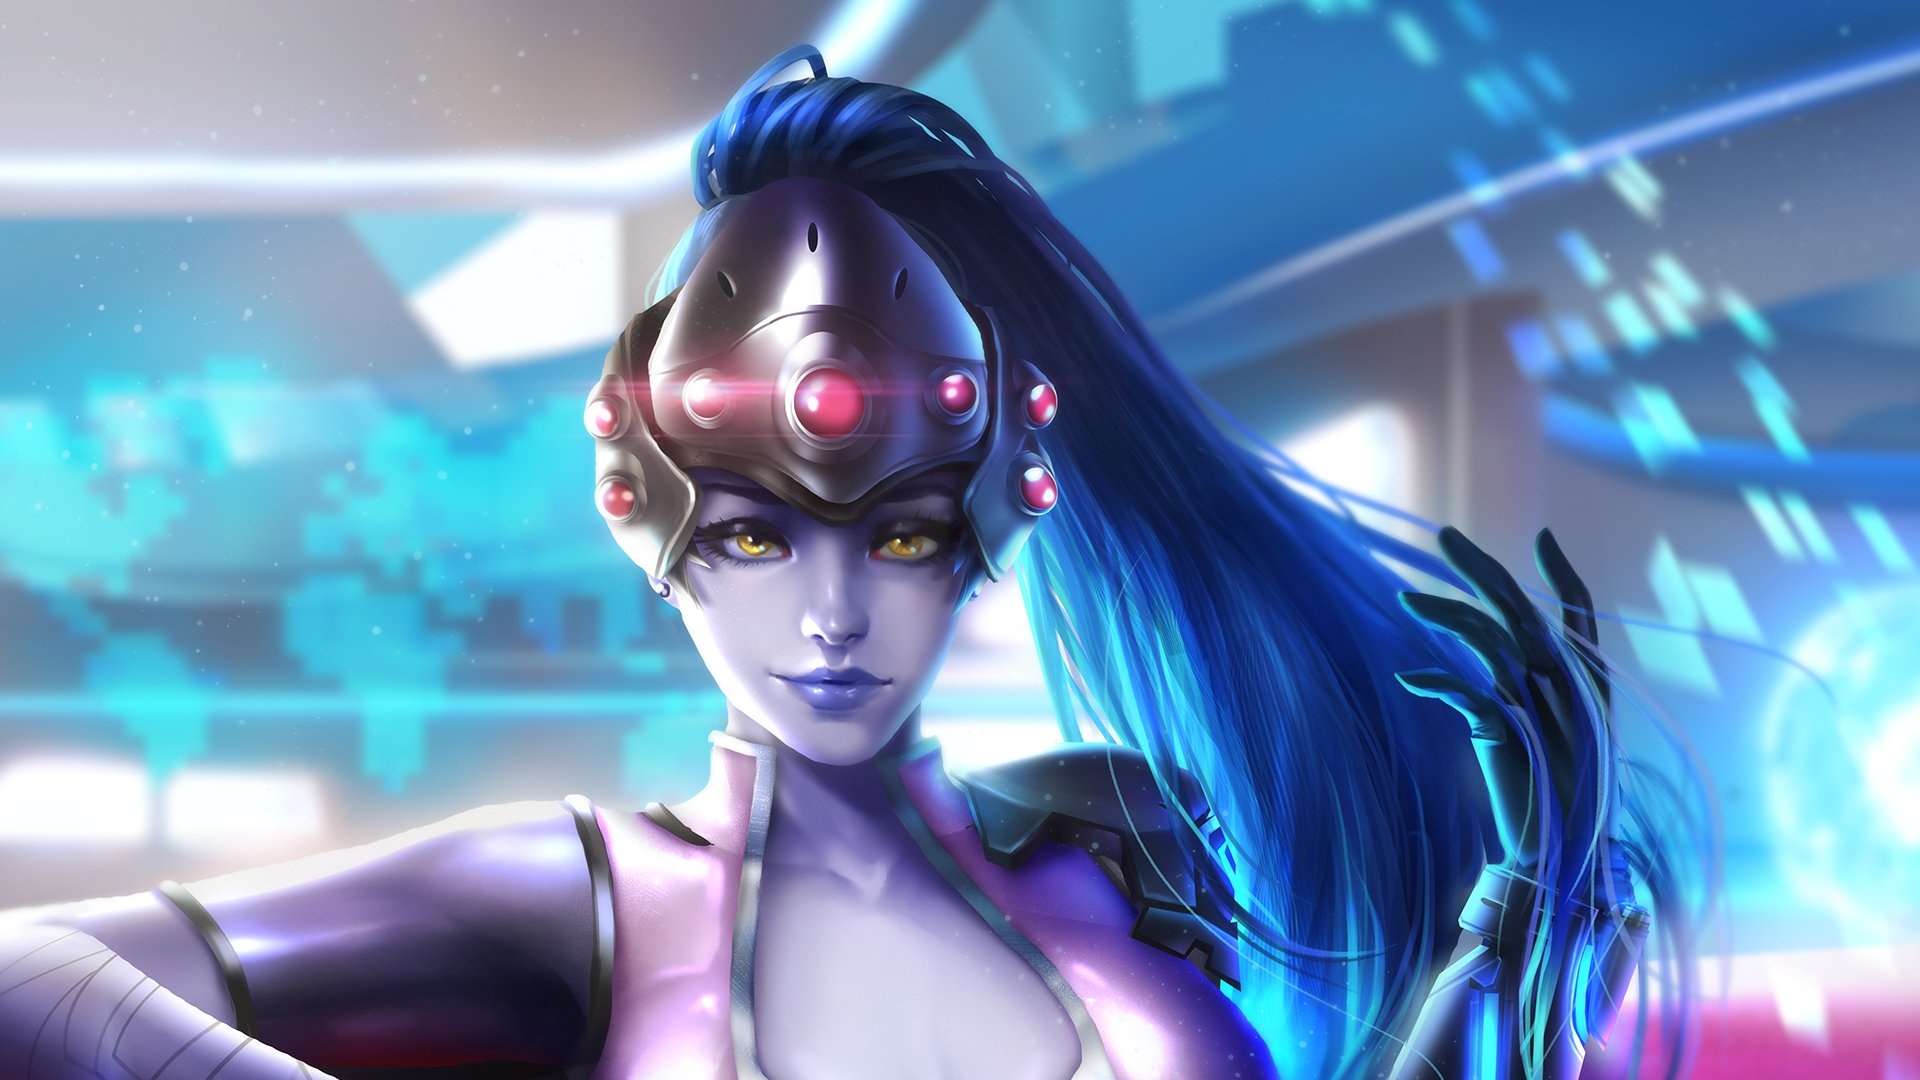 widowmaker overwatch wallpaper 1920x1080 - photo #22